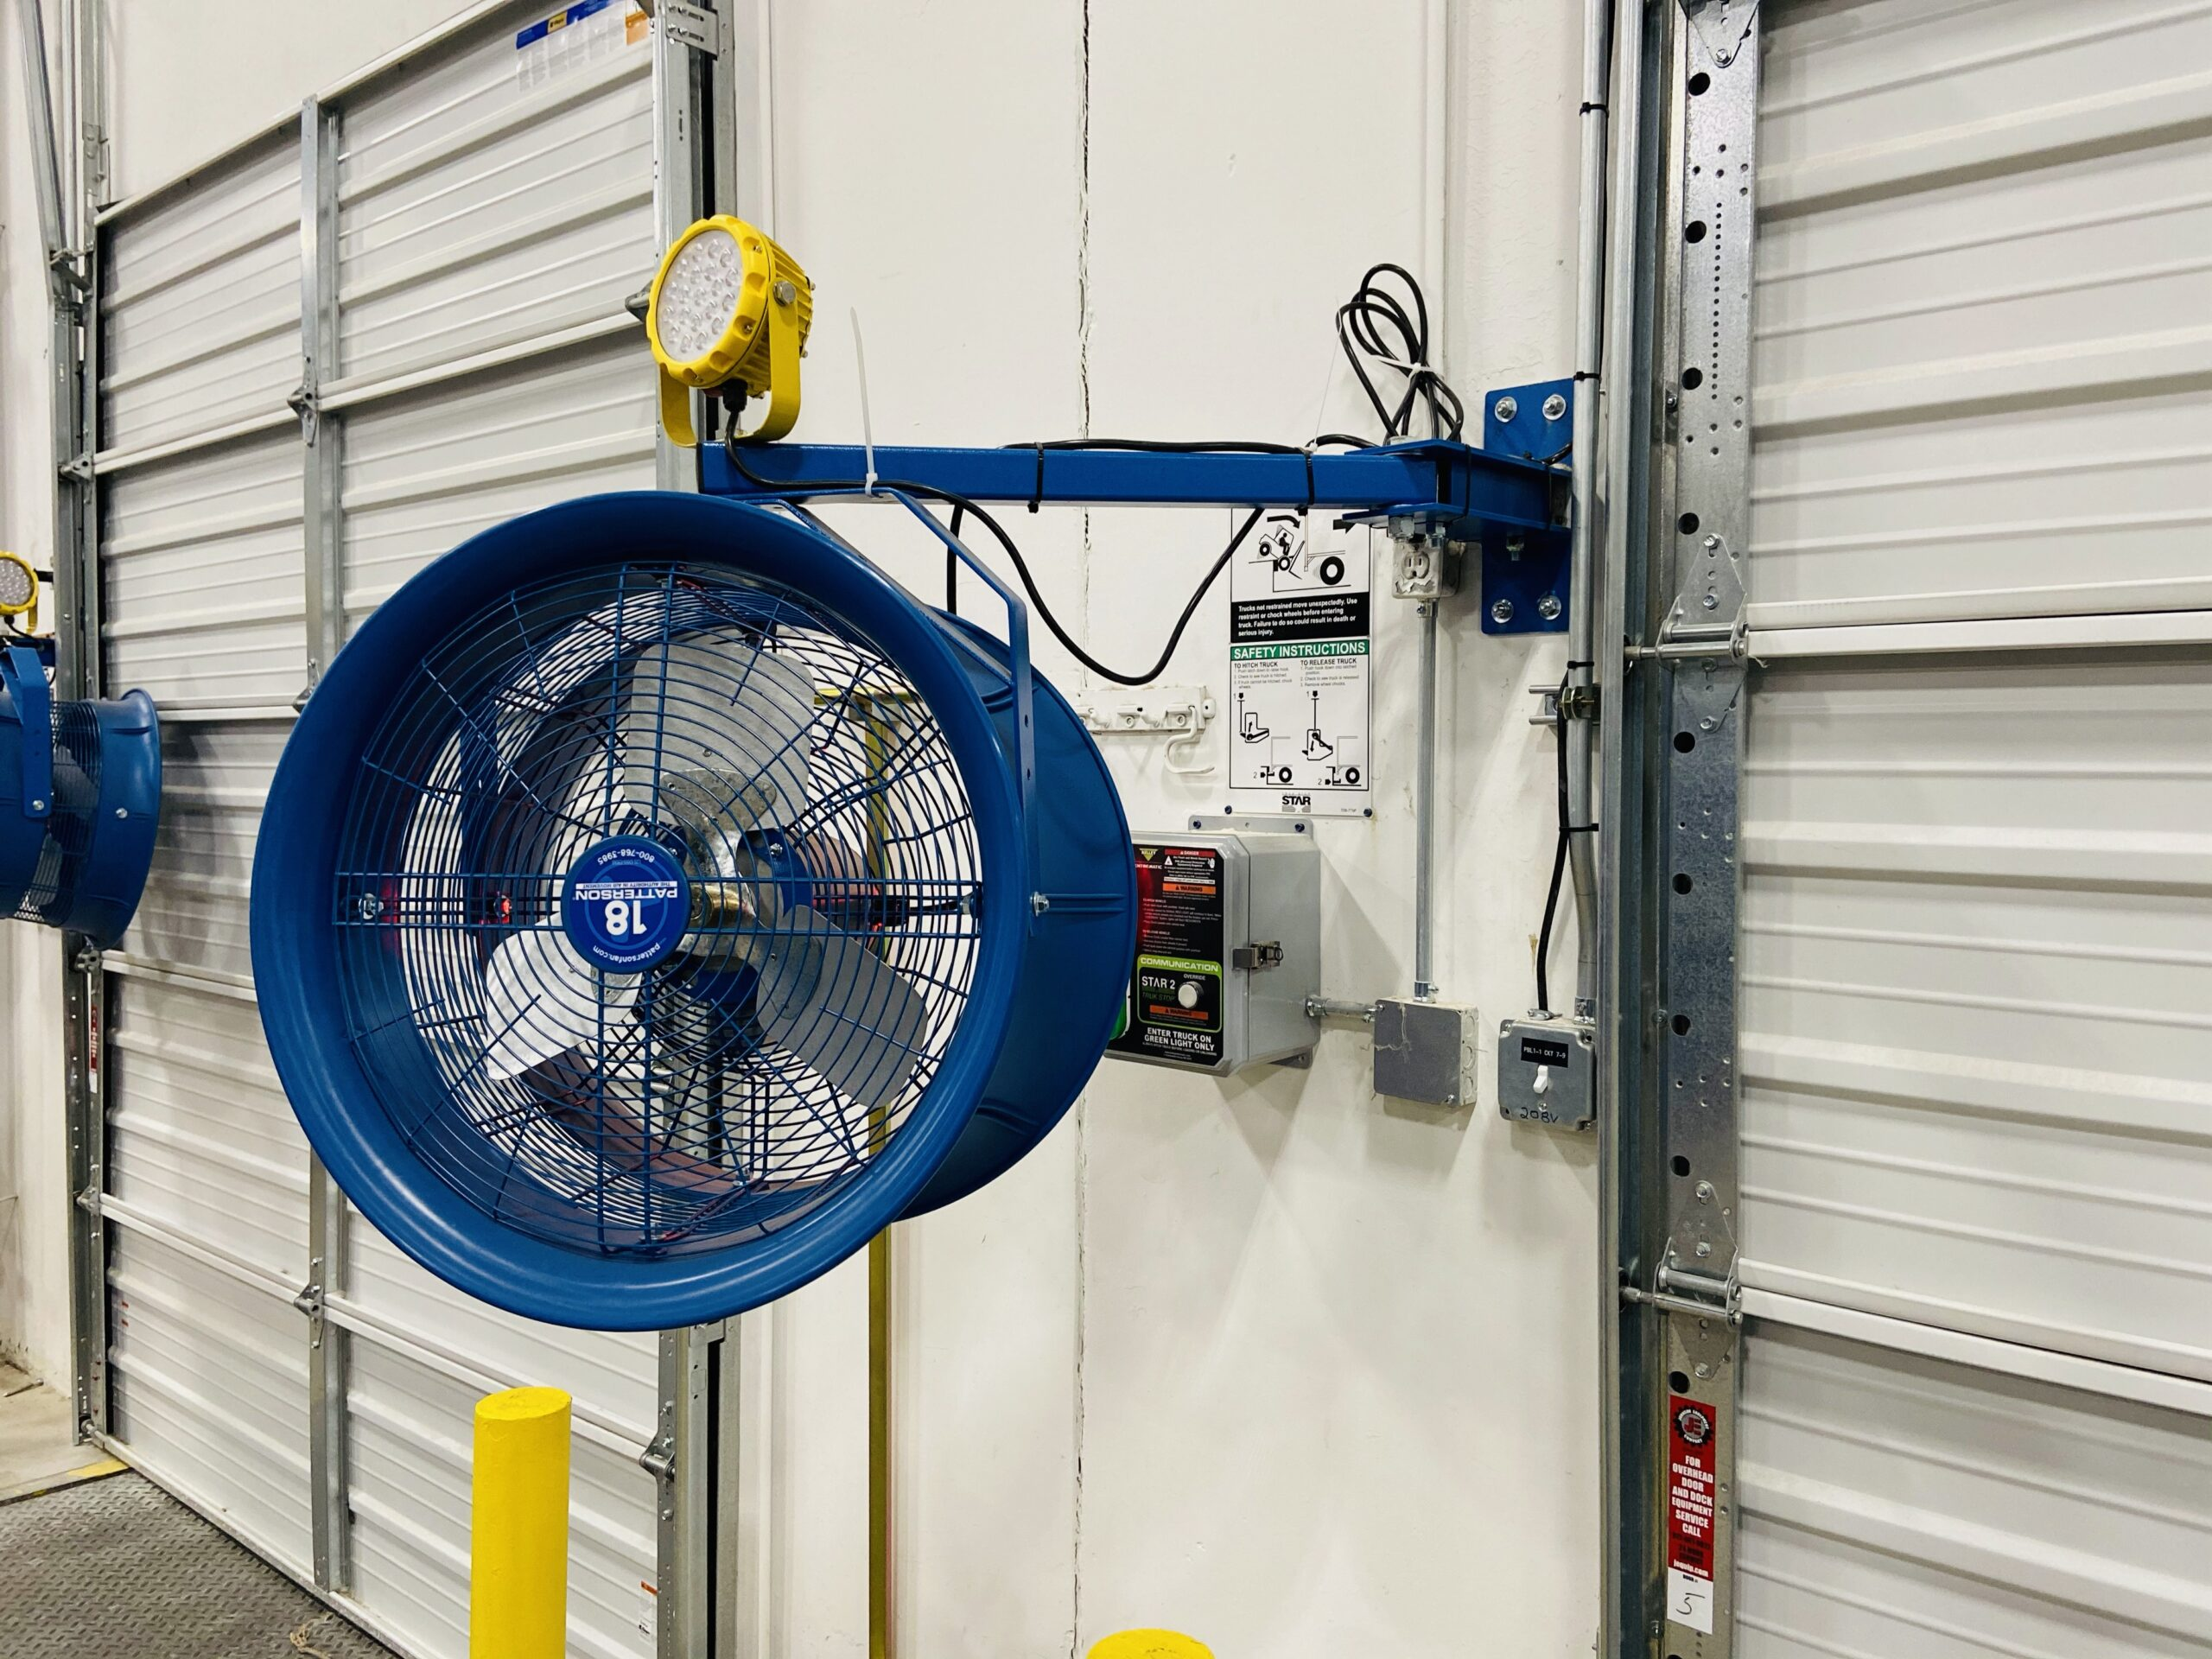 Blue fan attached to the wall by a garage door